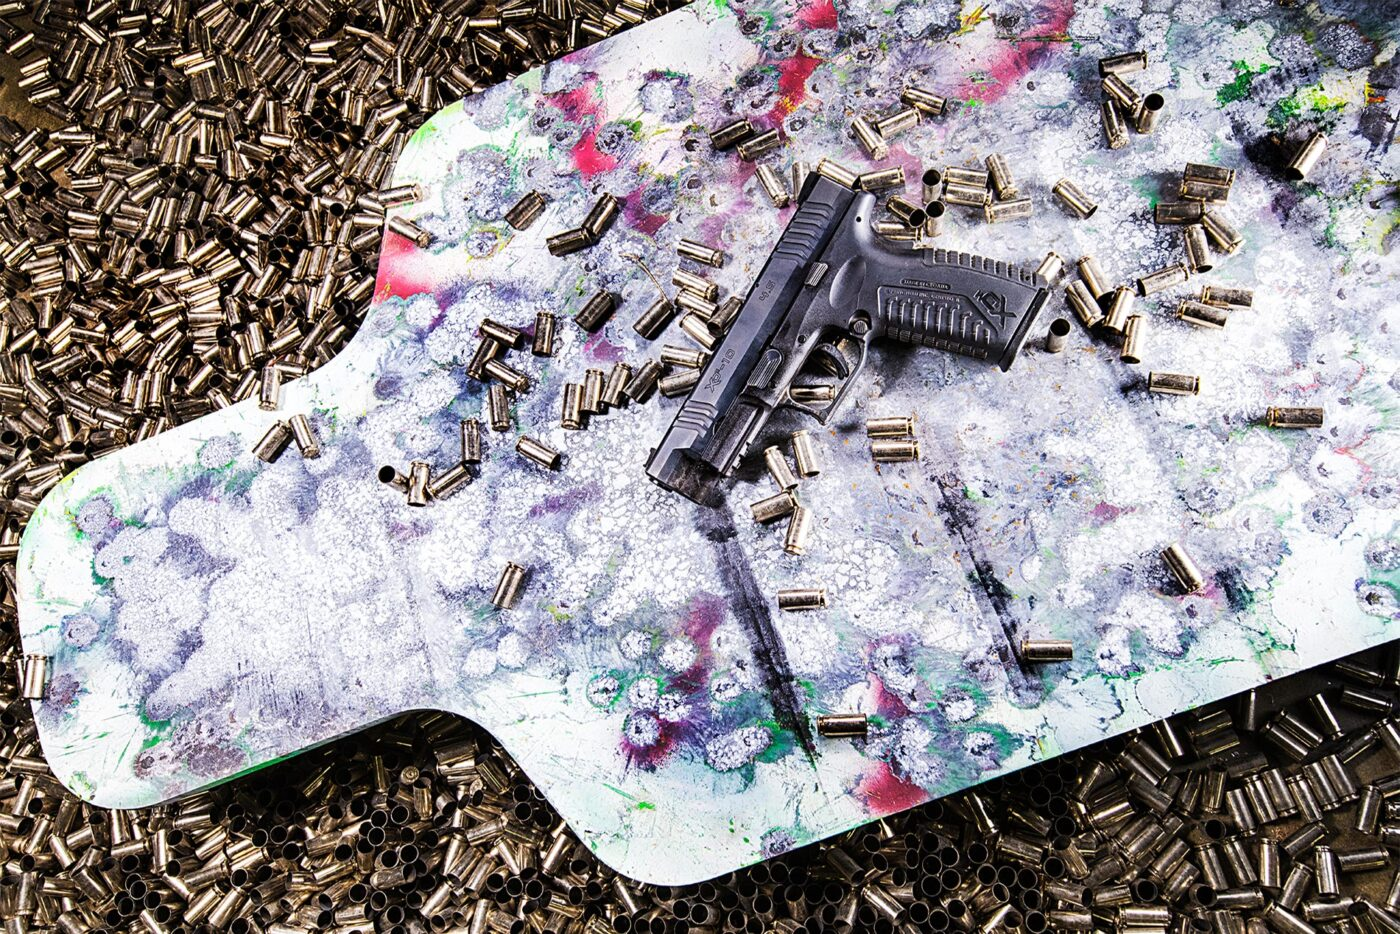 Springfield Armory XD-M 10mm pistol sitting on a target